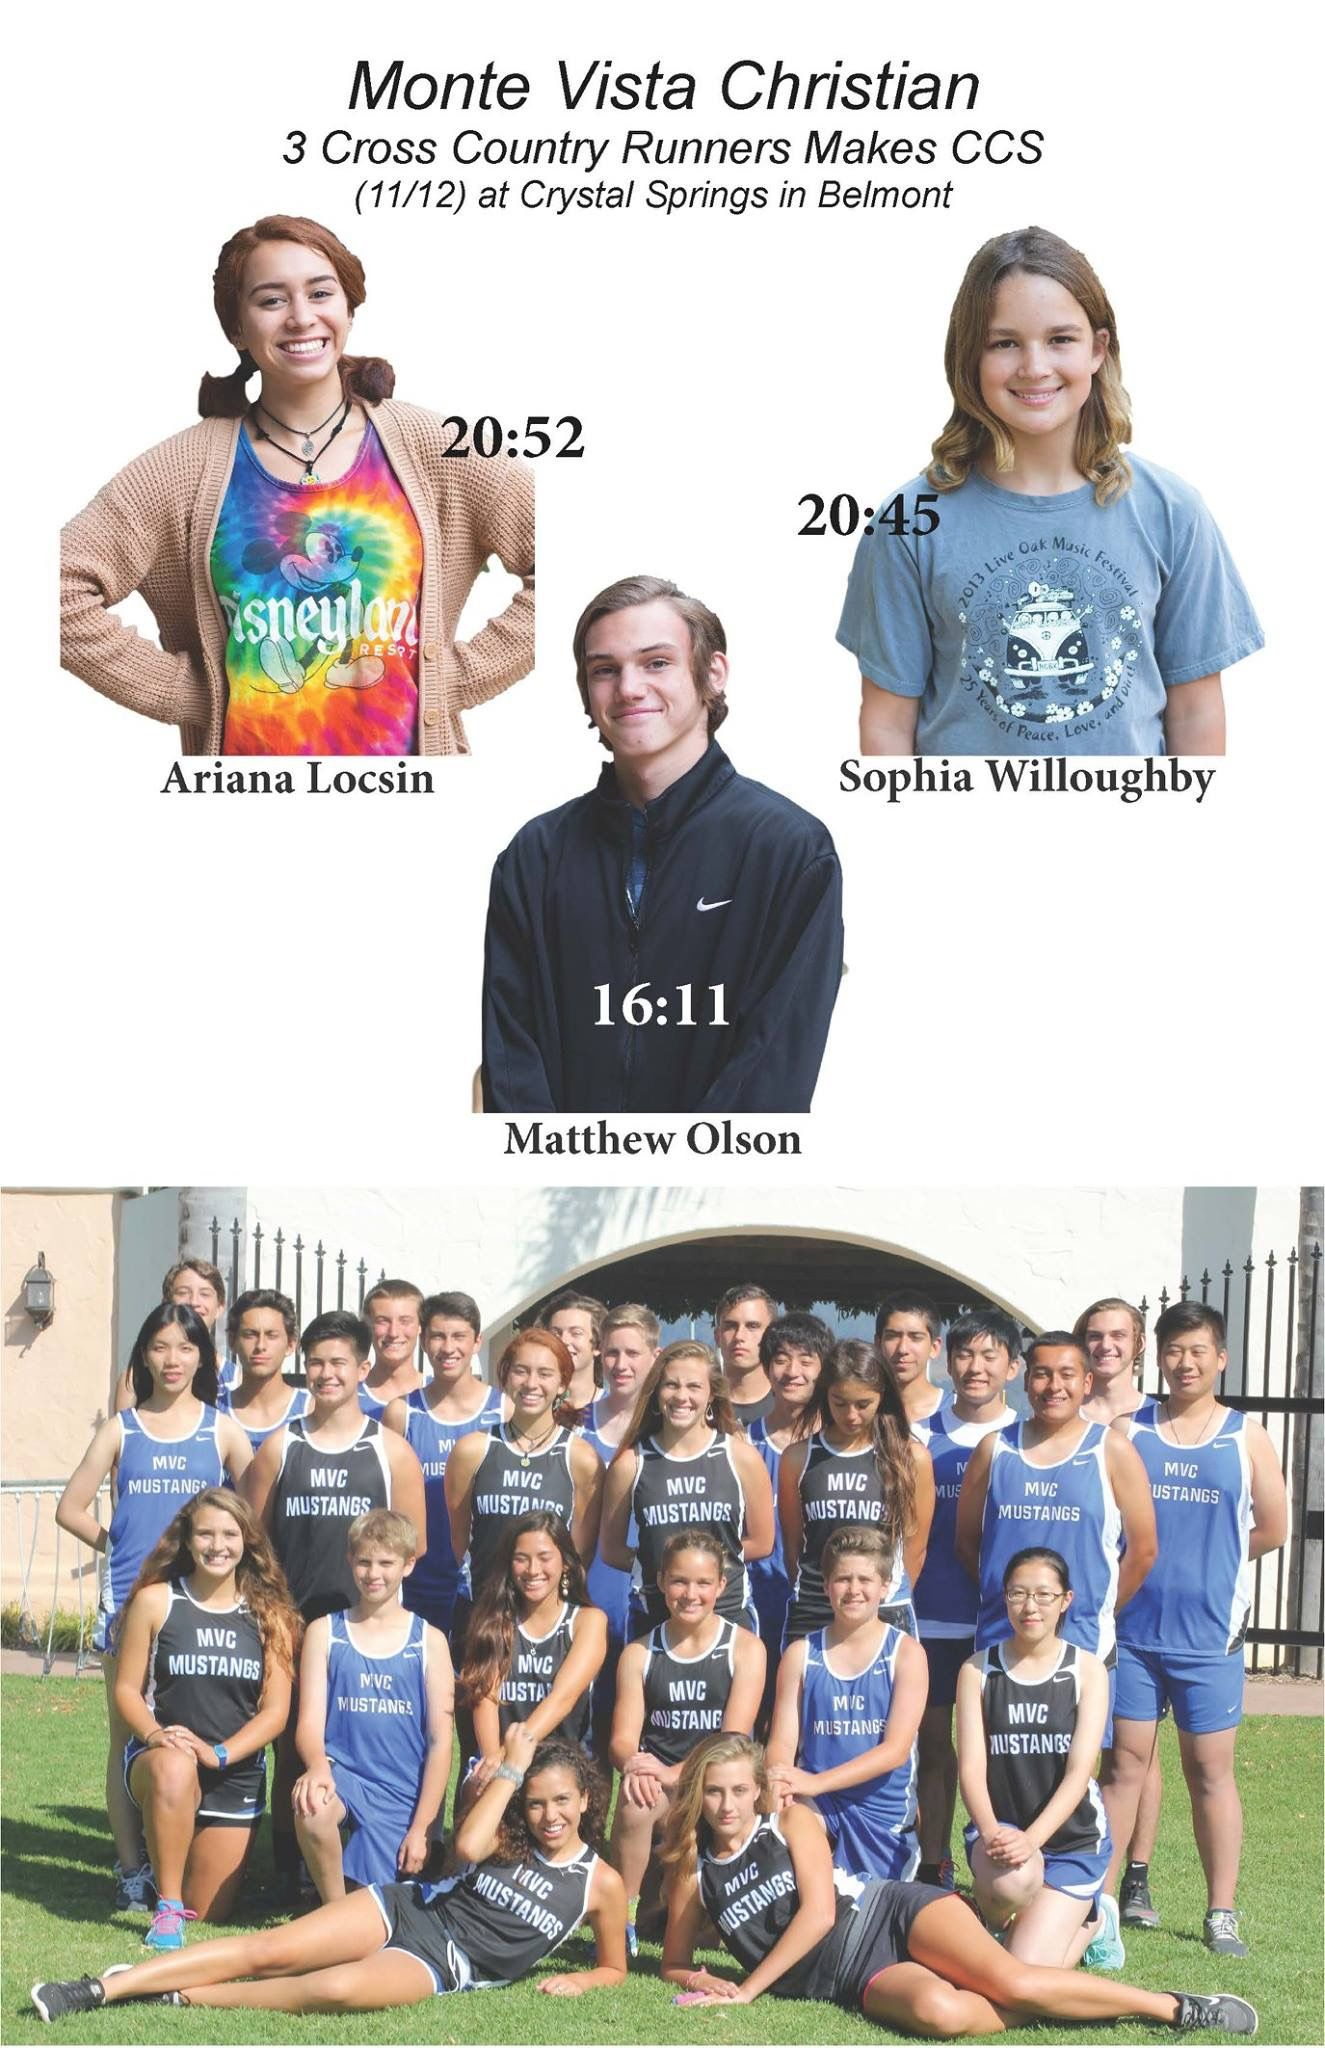 Monte Vista Christian Cross Country Three Varsity Runners Made Ccs Matthew Olson Sophia Willoughby Ariana Lo League Champs Cheer Team National Champions